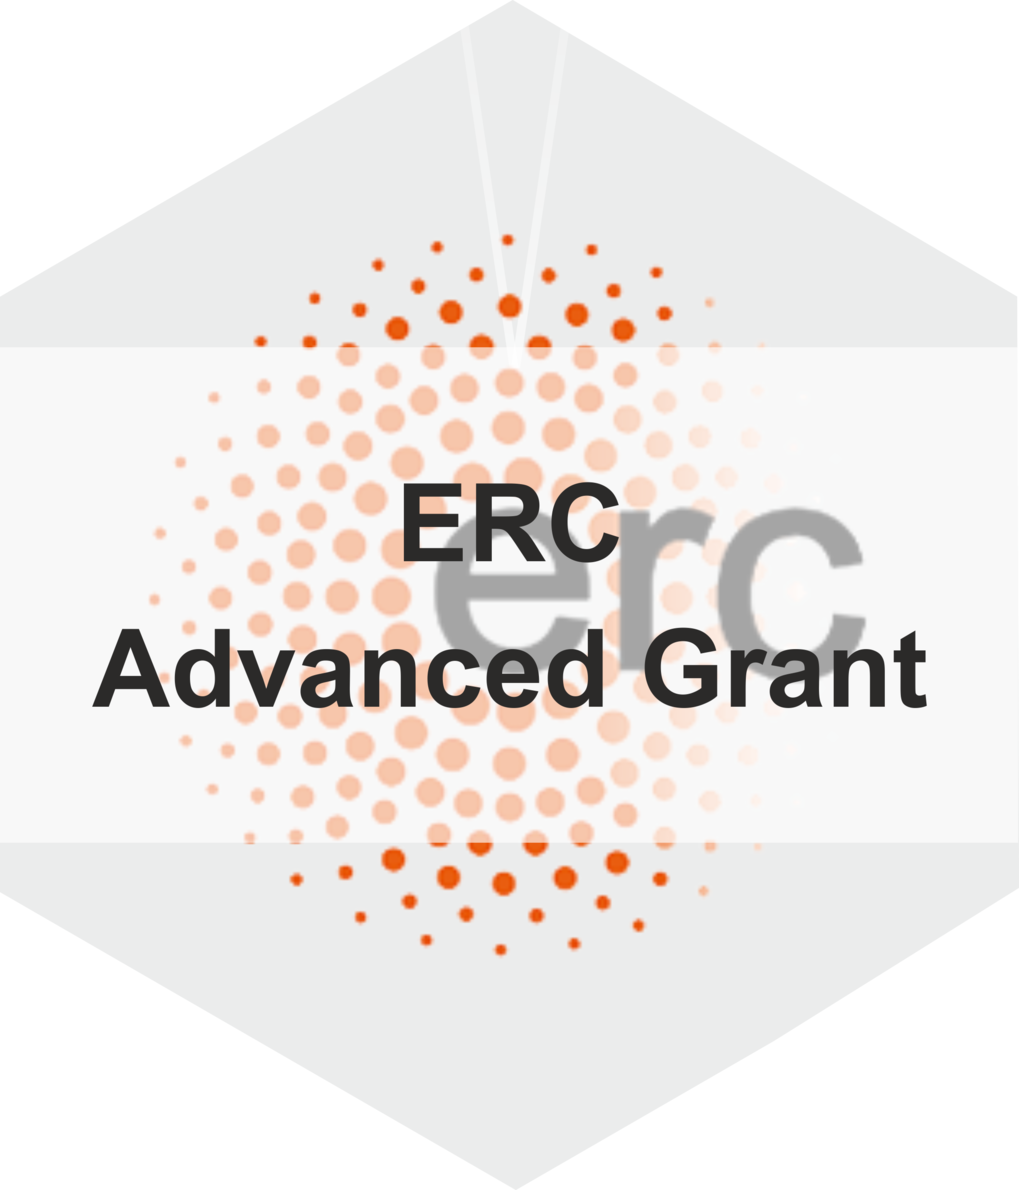 "Bernhard Keimer has won an ""Advanced Grant"" from the European Research Council (ERC) for a project on magnetic excitations in compounds and heterostructures based on 4d electrons. In the framework of this project, a new beamline for resonant inelastic x-ray scattering will be built at the PETRA-III synchrotron in Hamburg."